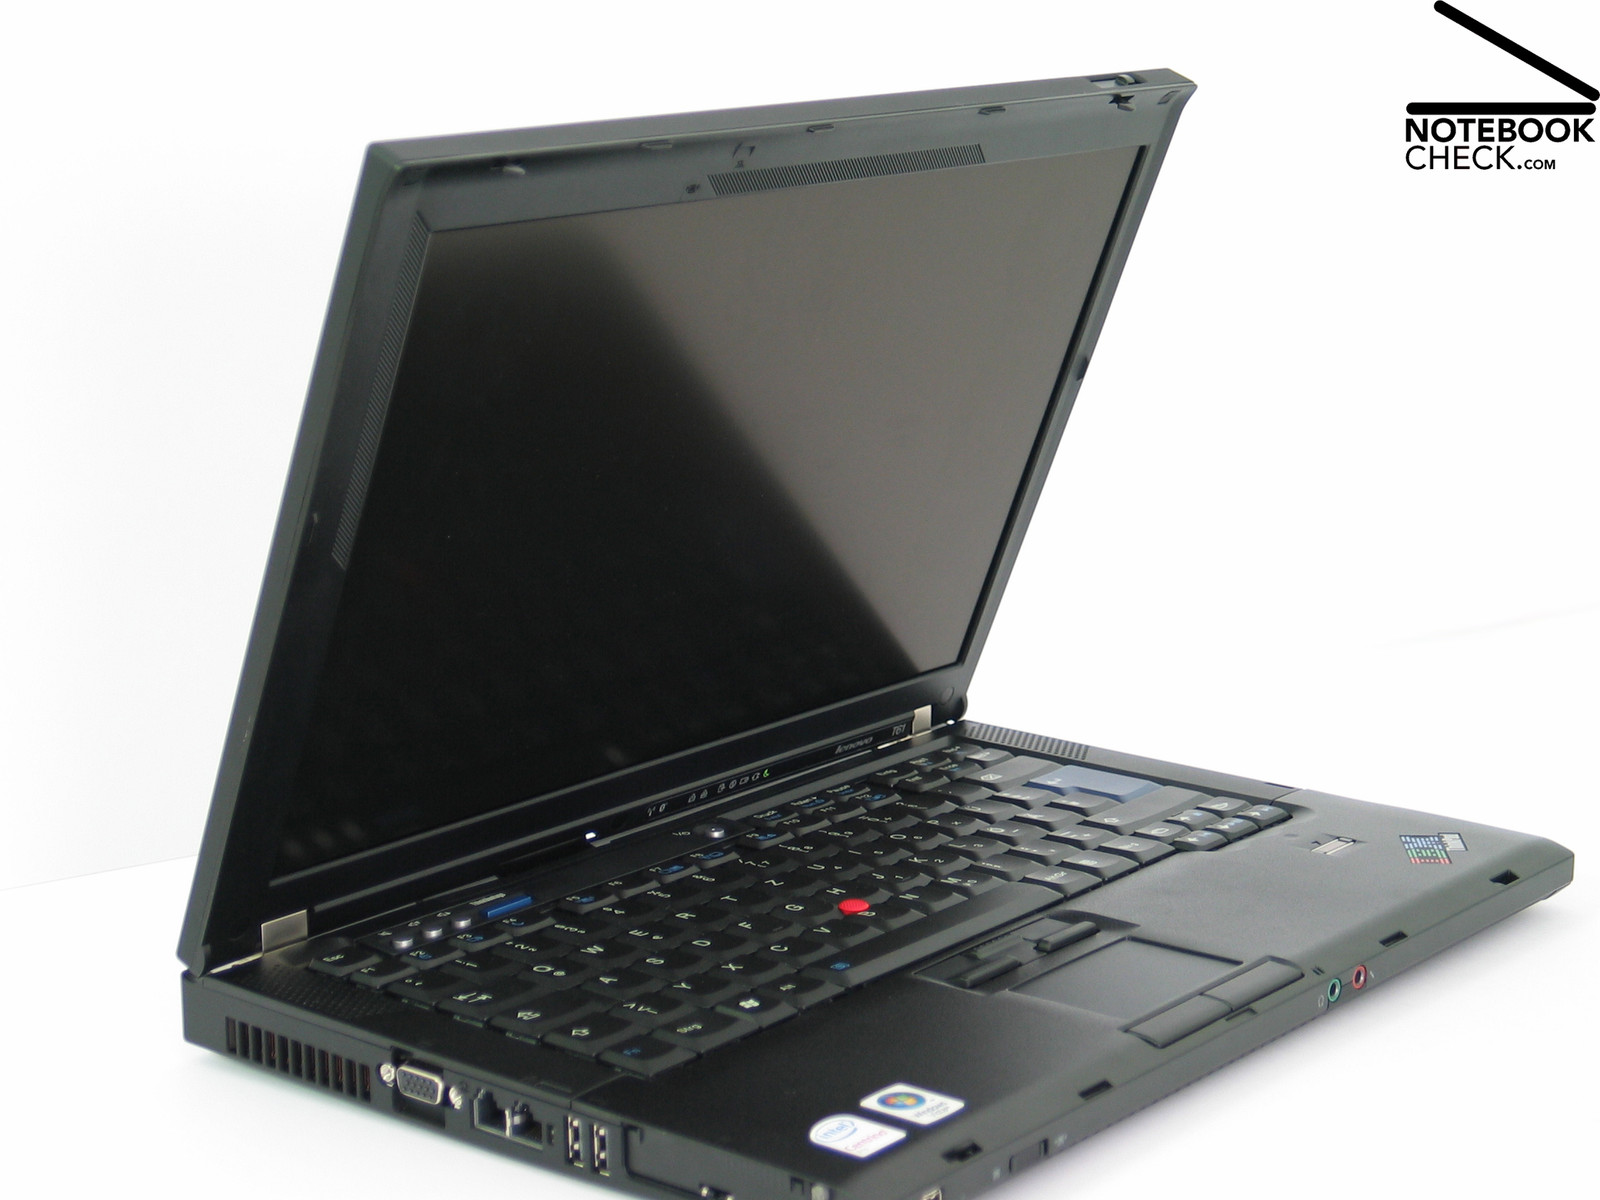 Lenovo ThinkPad T61p ODD Driver Windows XP